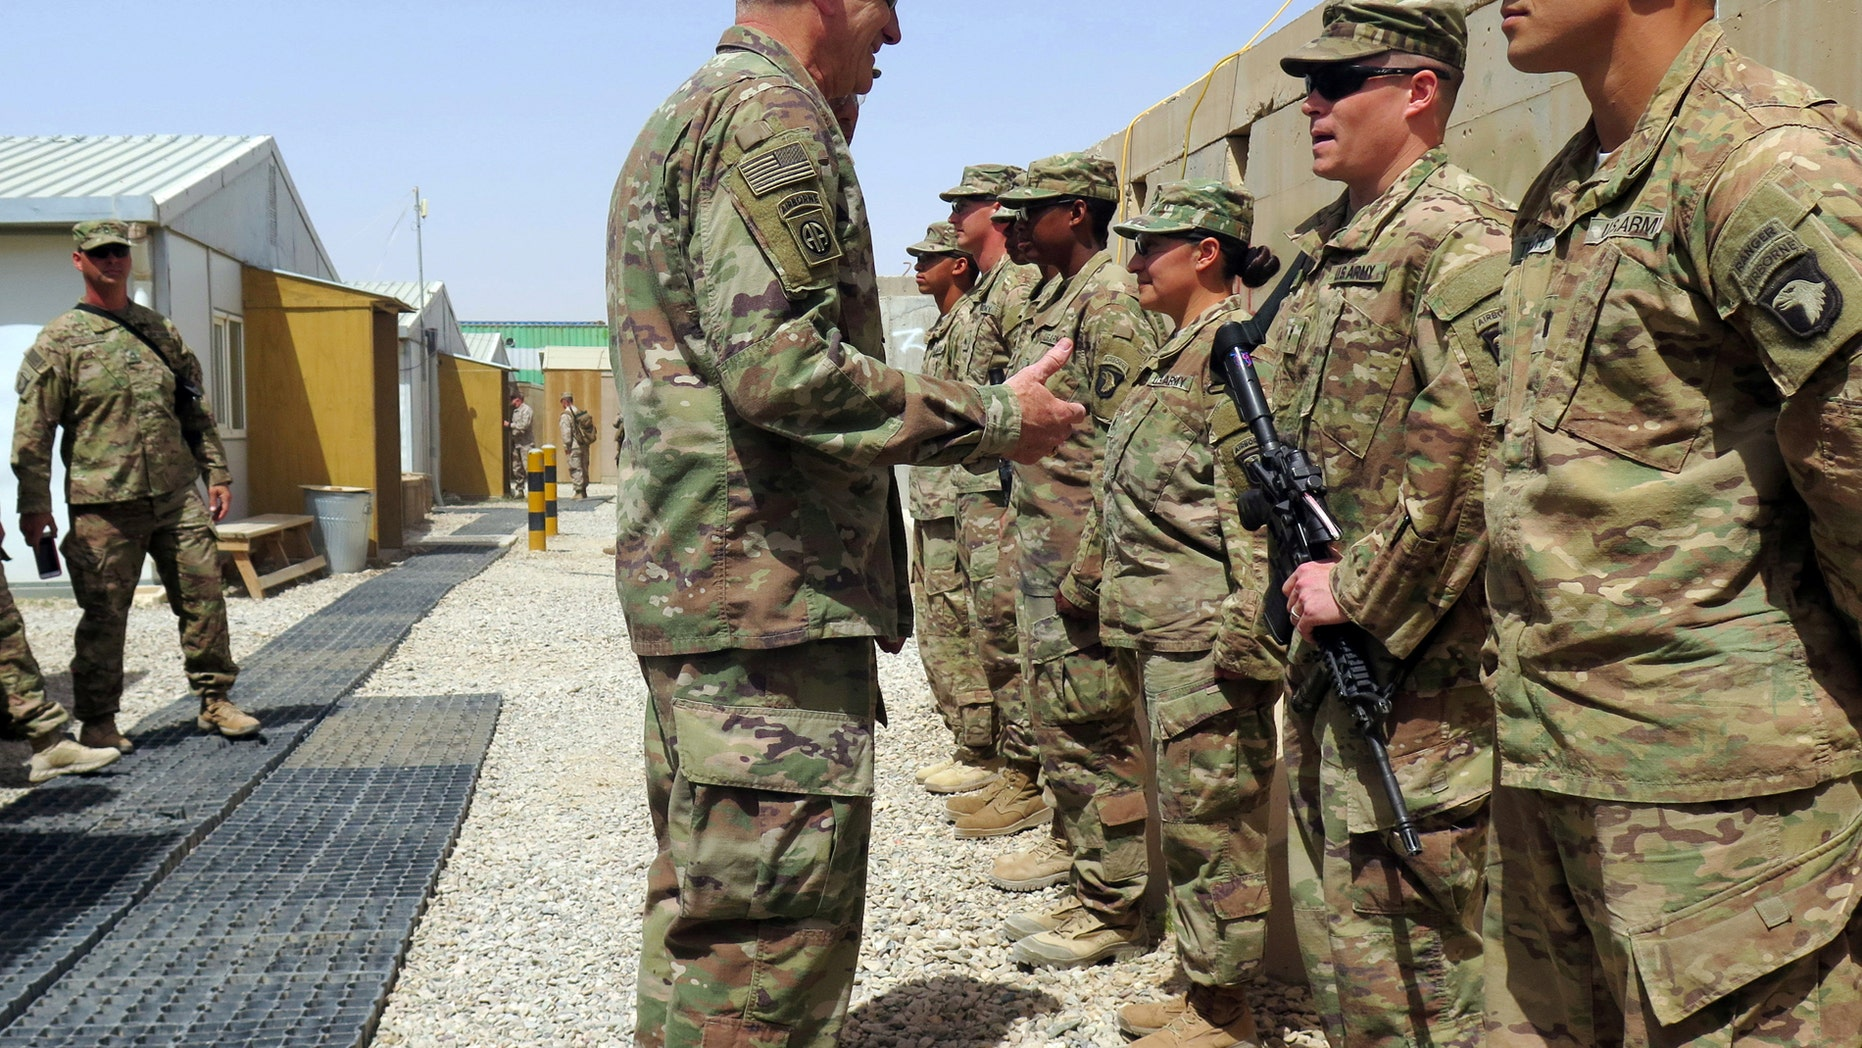 U.S. Army General John Nicholson, commander of Resolute Support forces and U.S. forces in Afghanistan, talks to U.S. soldiers during a transfer of authority ceremony at Shorab camp, in Helmand province, Afghanistan April 29, 2017. Picture taken April 29, 2017. REUTERS/James Mackenzie - RTS14IL2